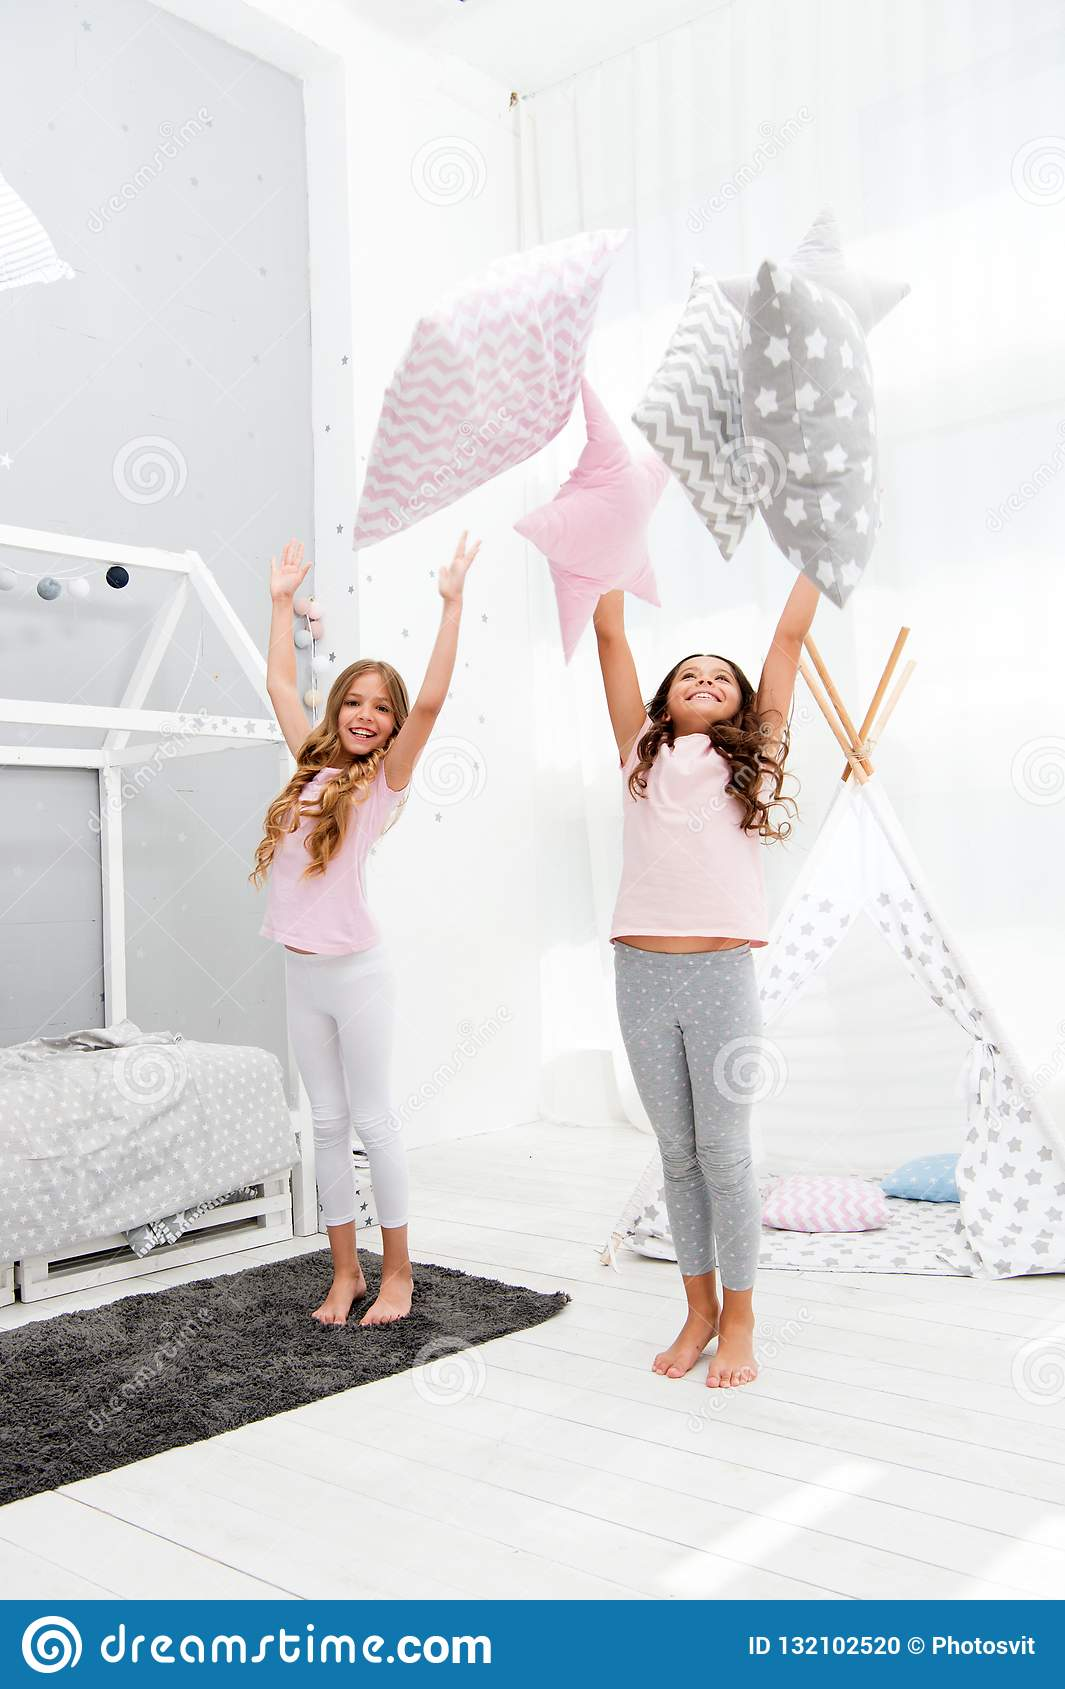 doing whatever they want sleepover party ideas sisters play rh dreamstime com